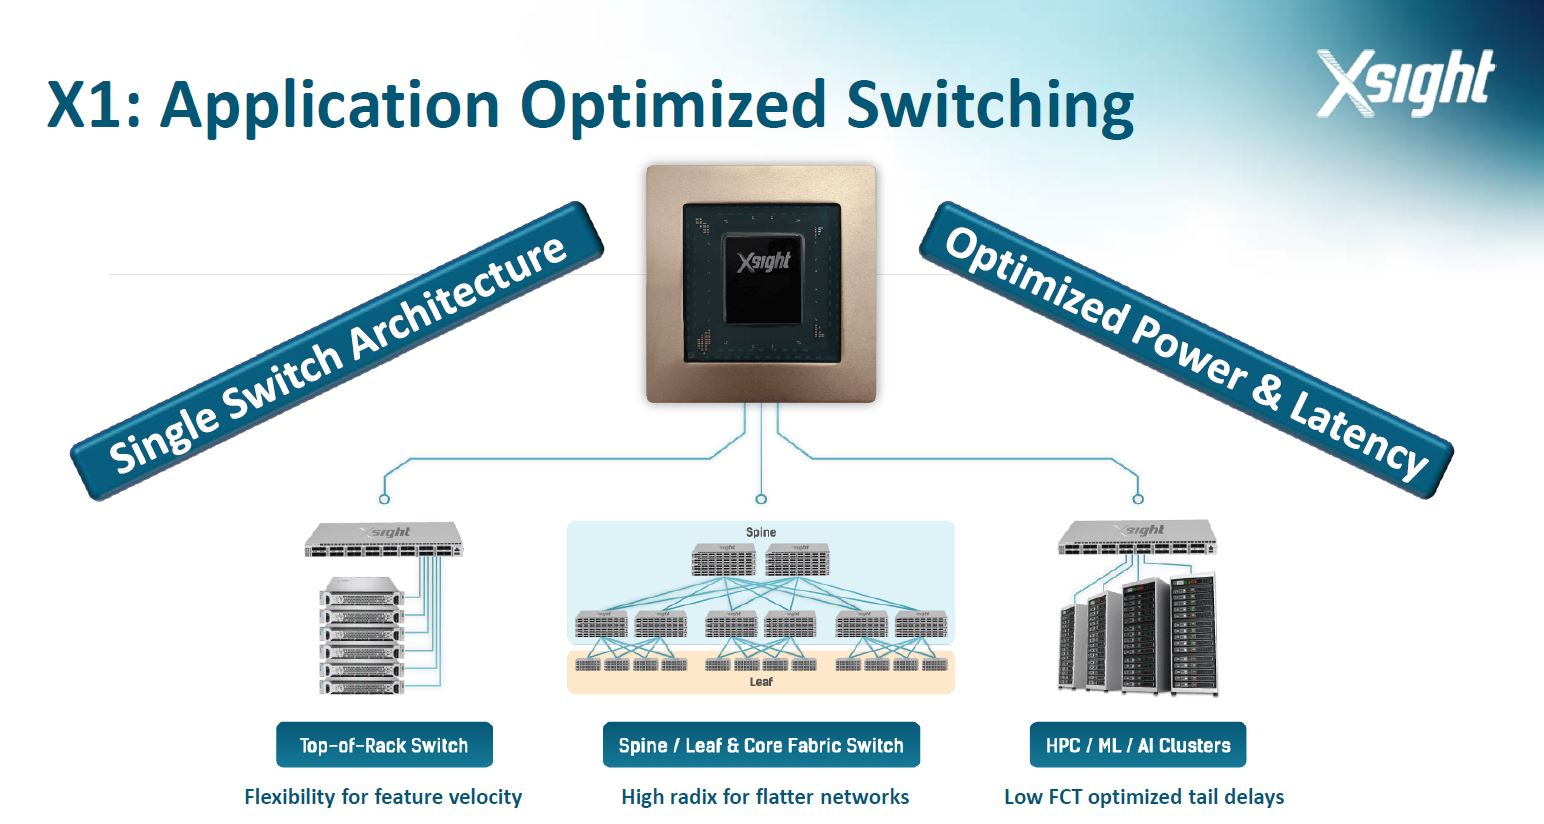 Xsight X1 Single Architecture For Many Markets